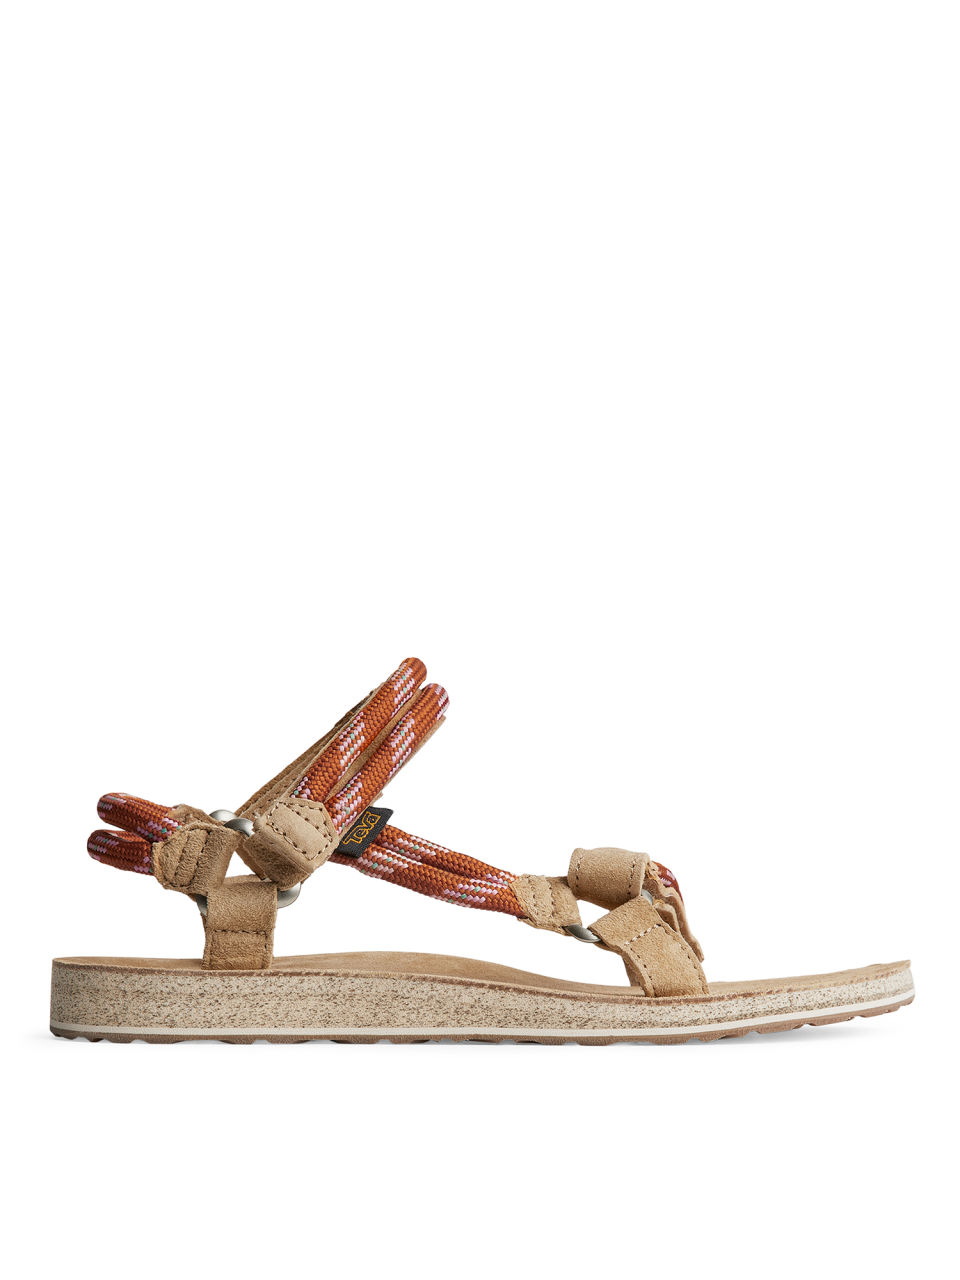 0b9d6e90e5c240 Teva Original Universal Rope Sandals - Beige Orange - Shoes - ARKET